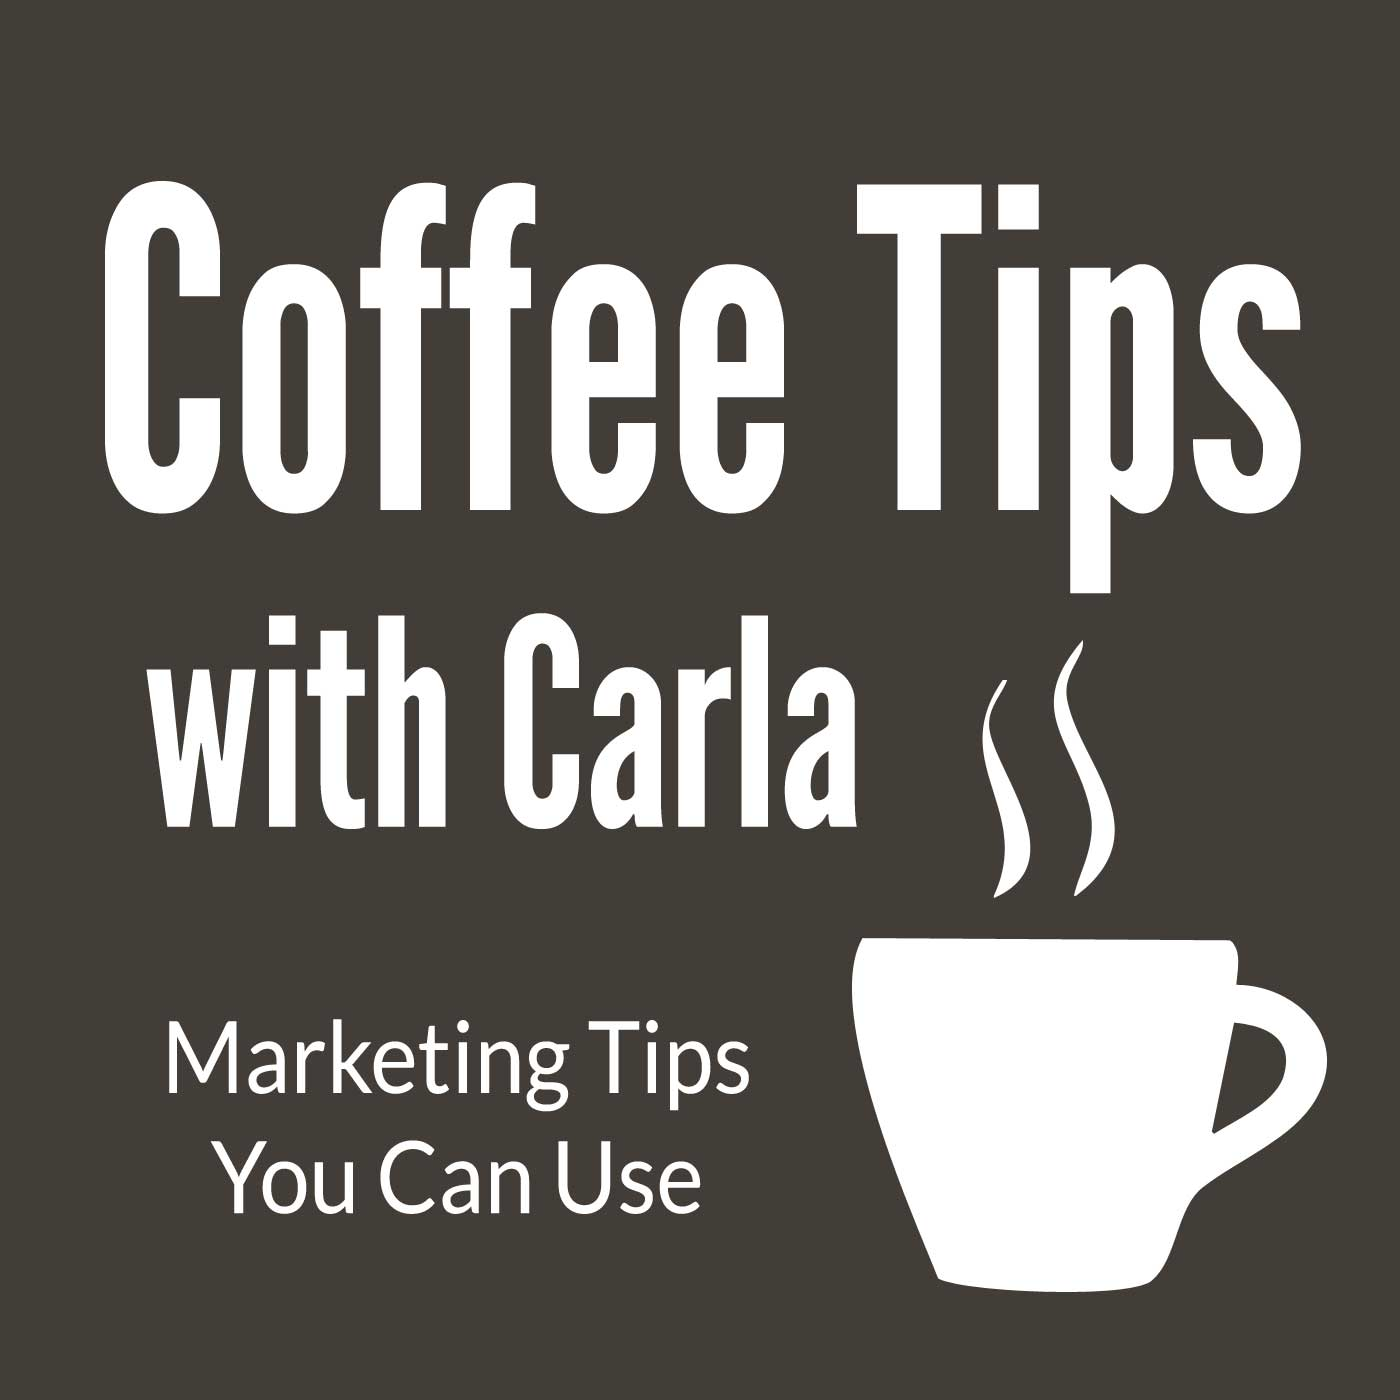 Coffee Tips with Carla